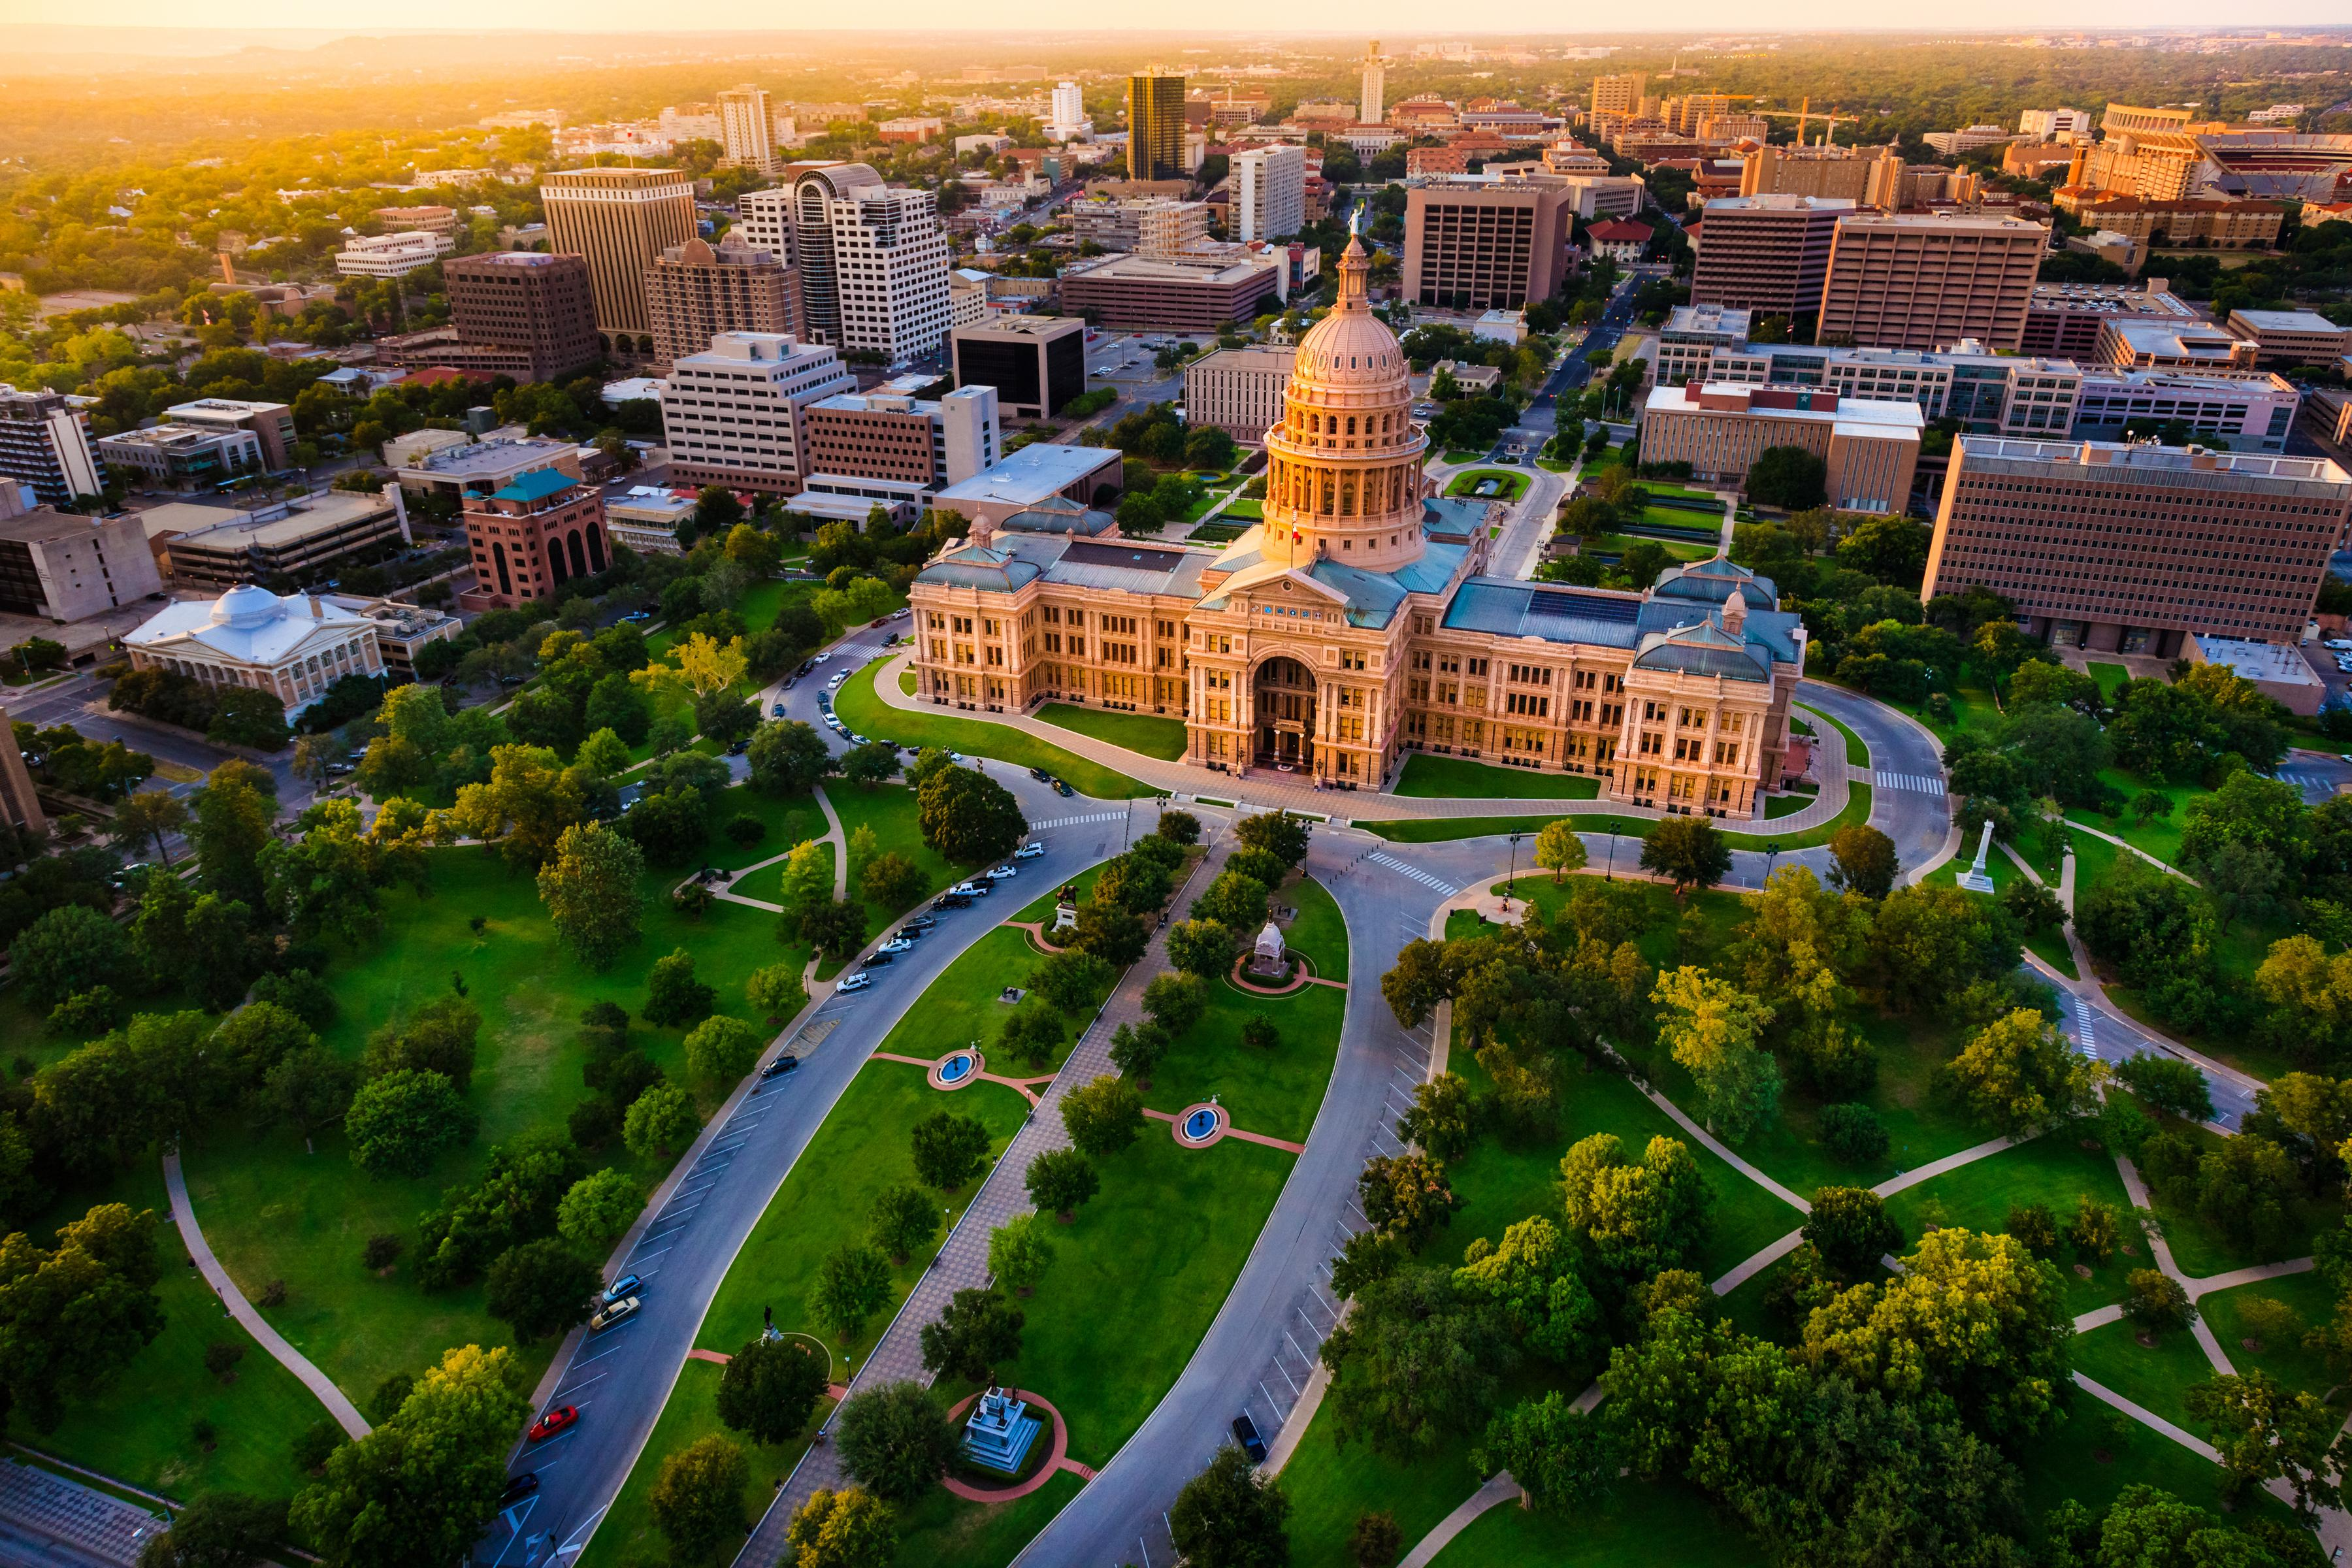 Take a day trip to the state capitol in Austin.